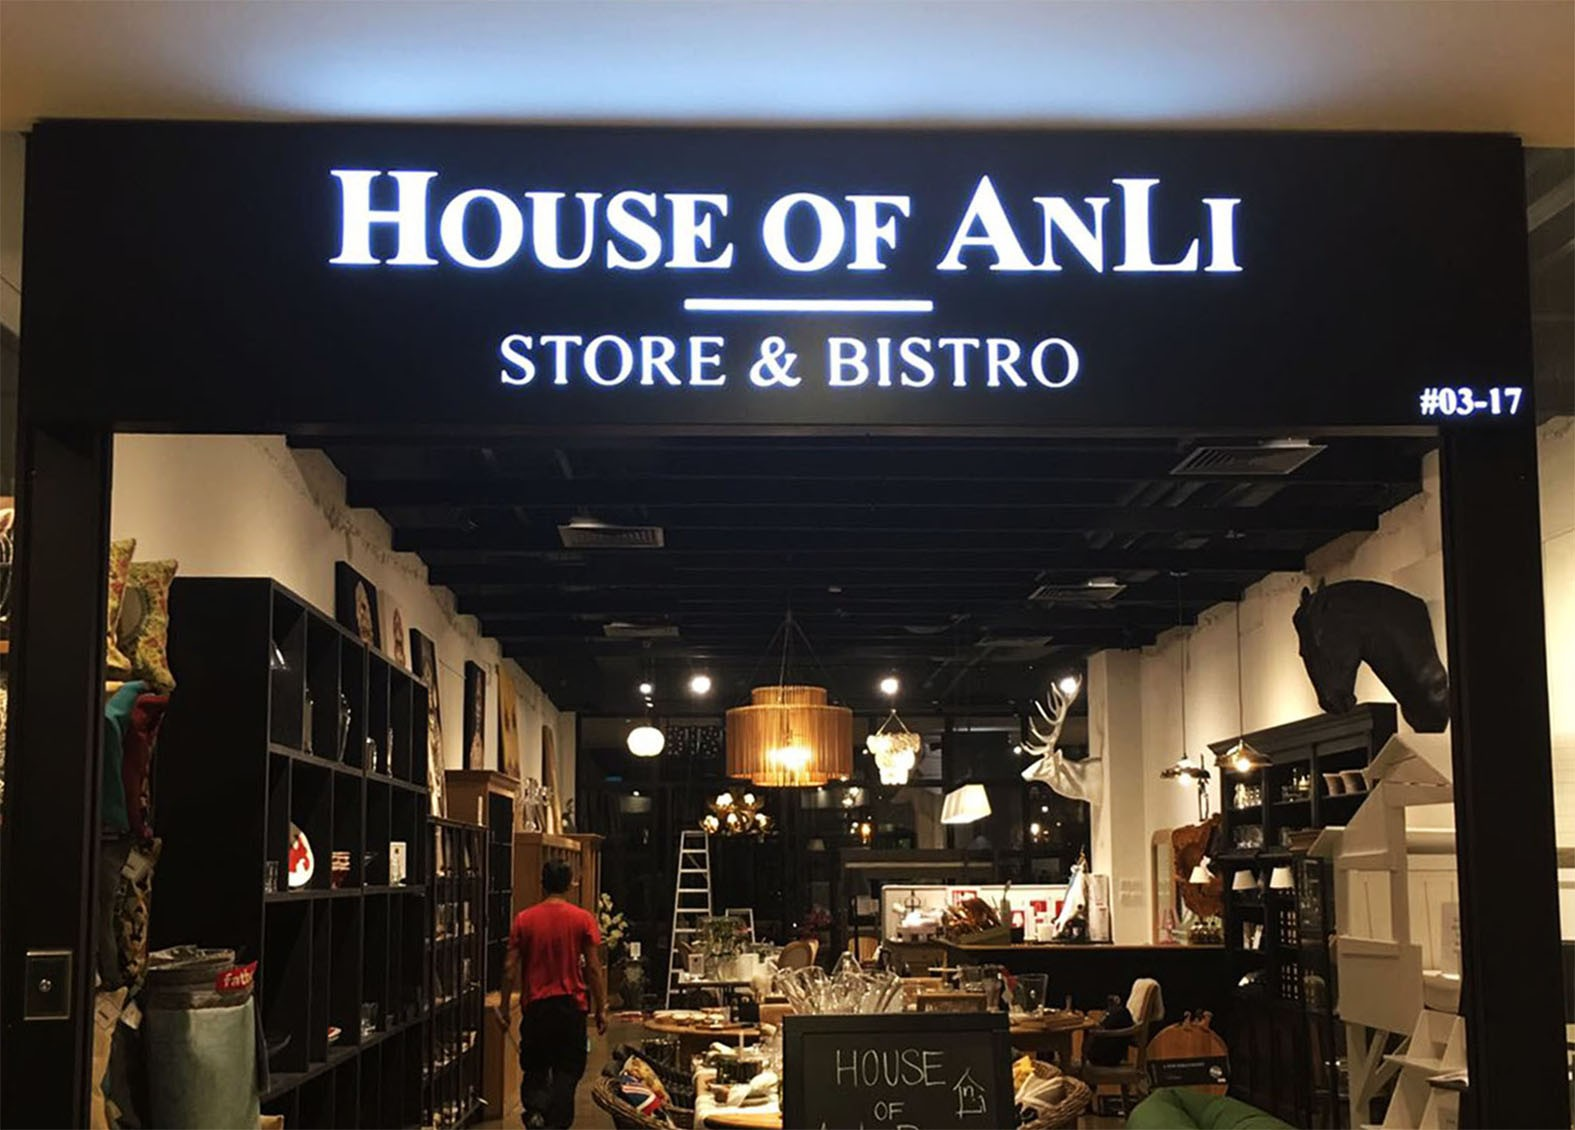 House of Anli